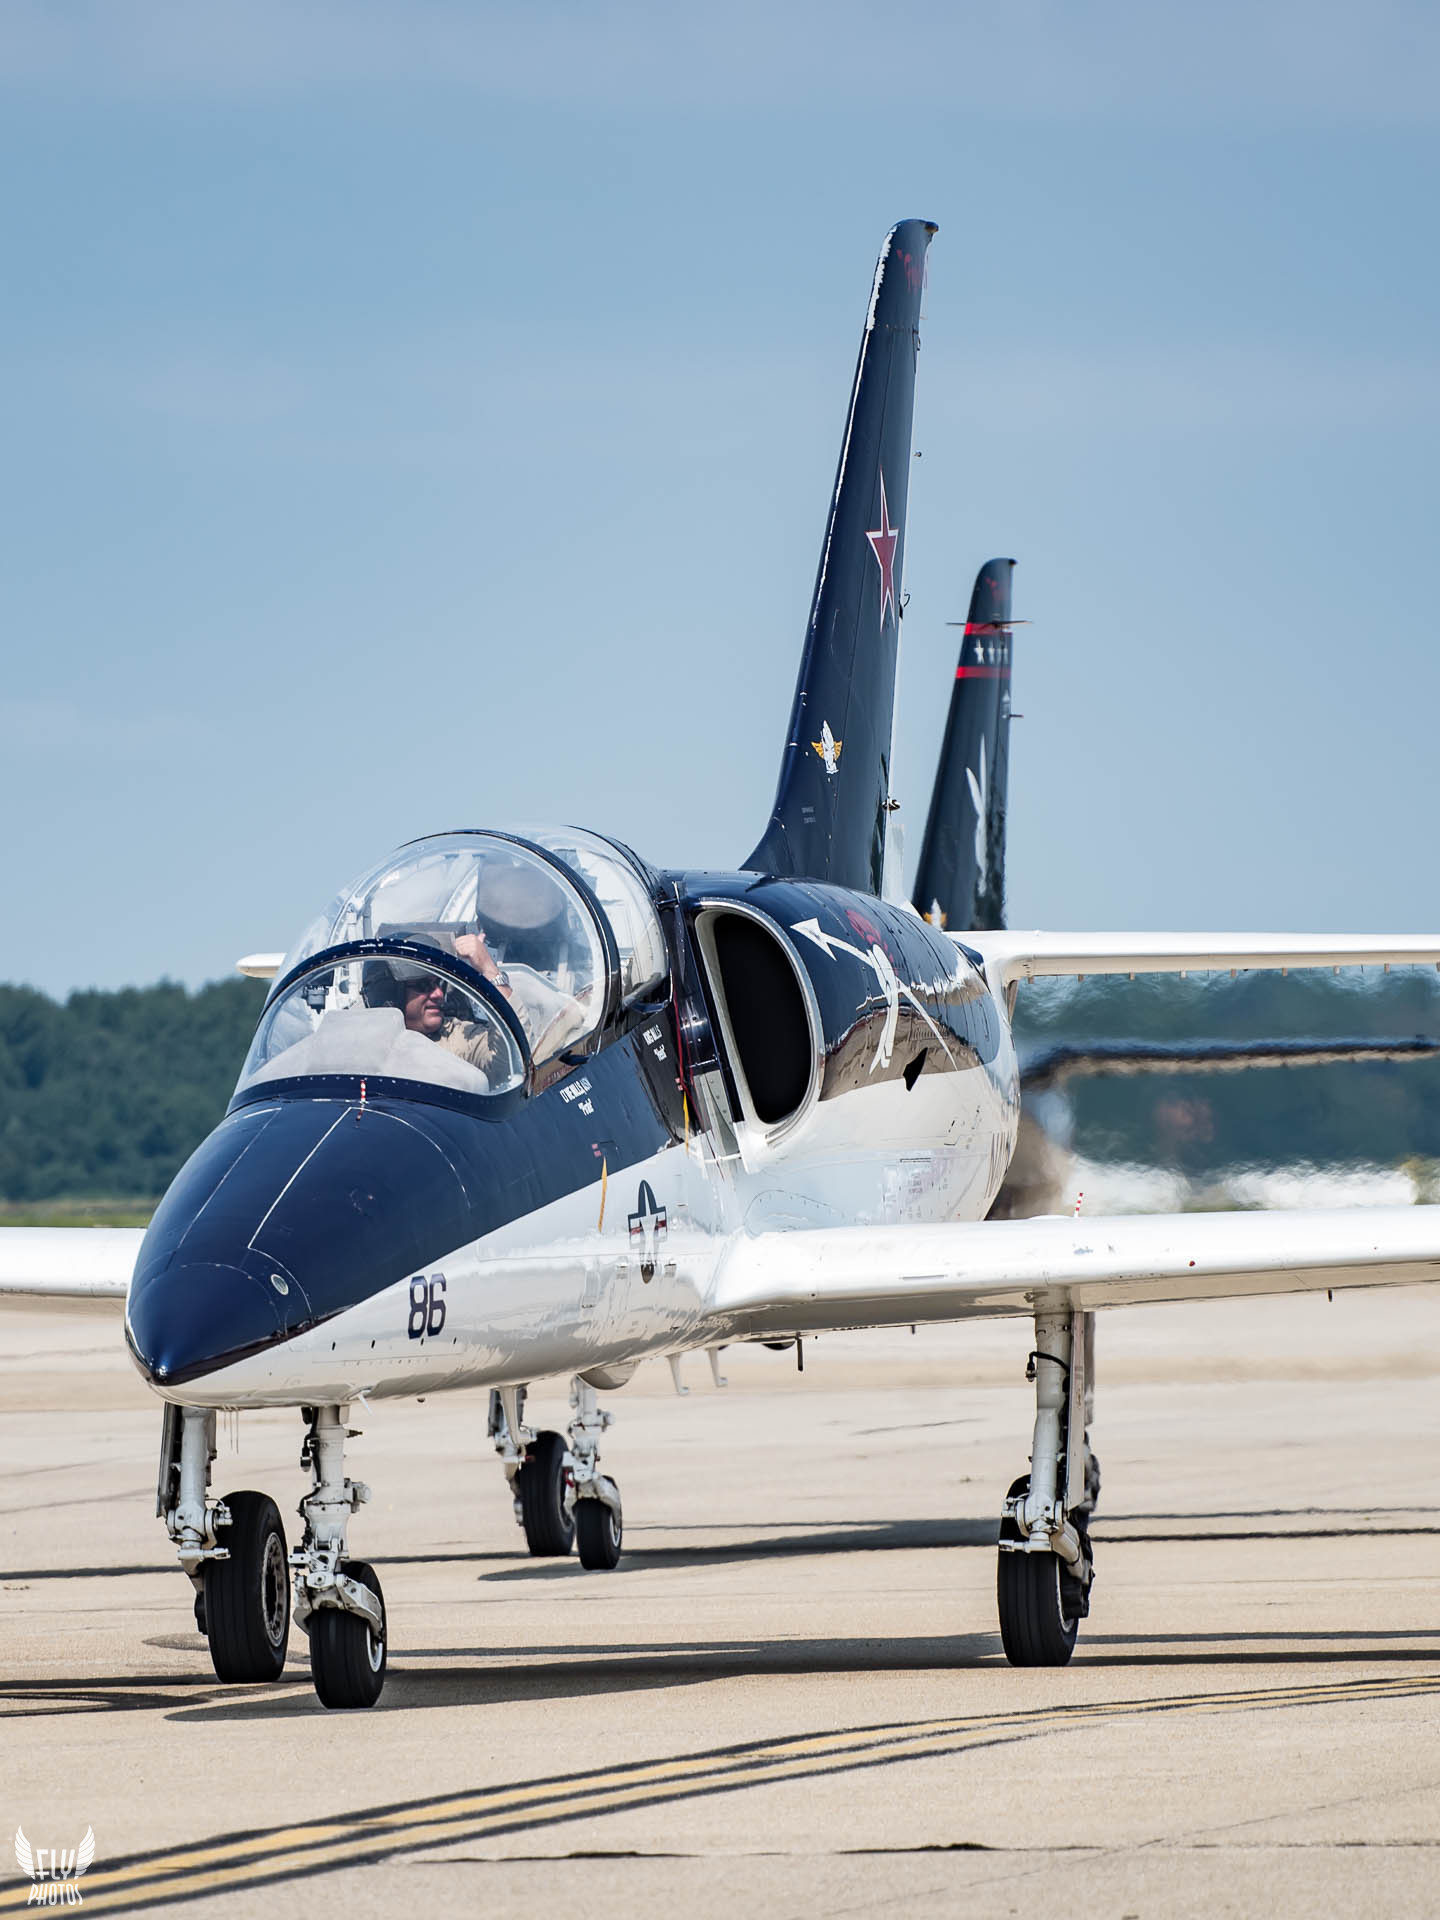 Photo of the day: Lazy taxiing on hot day